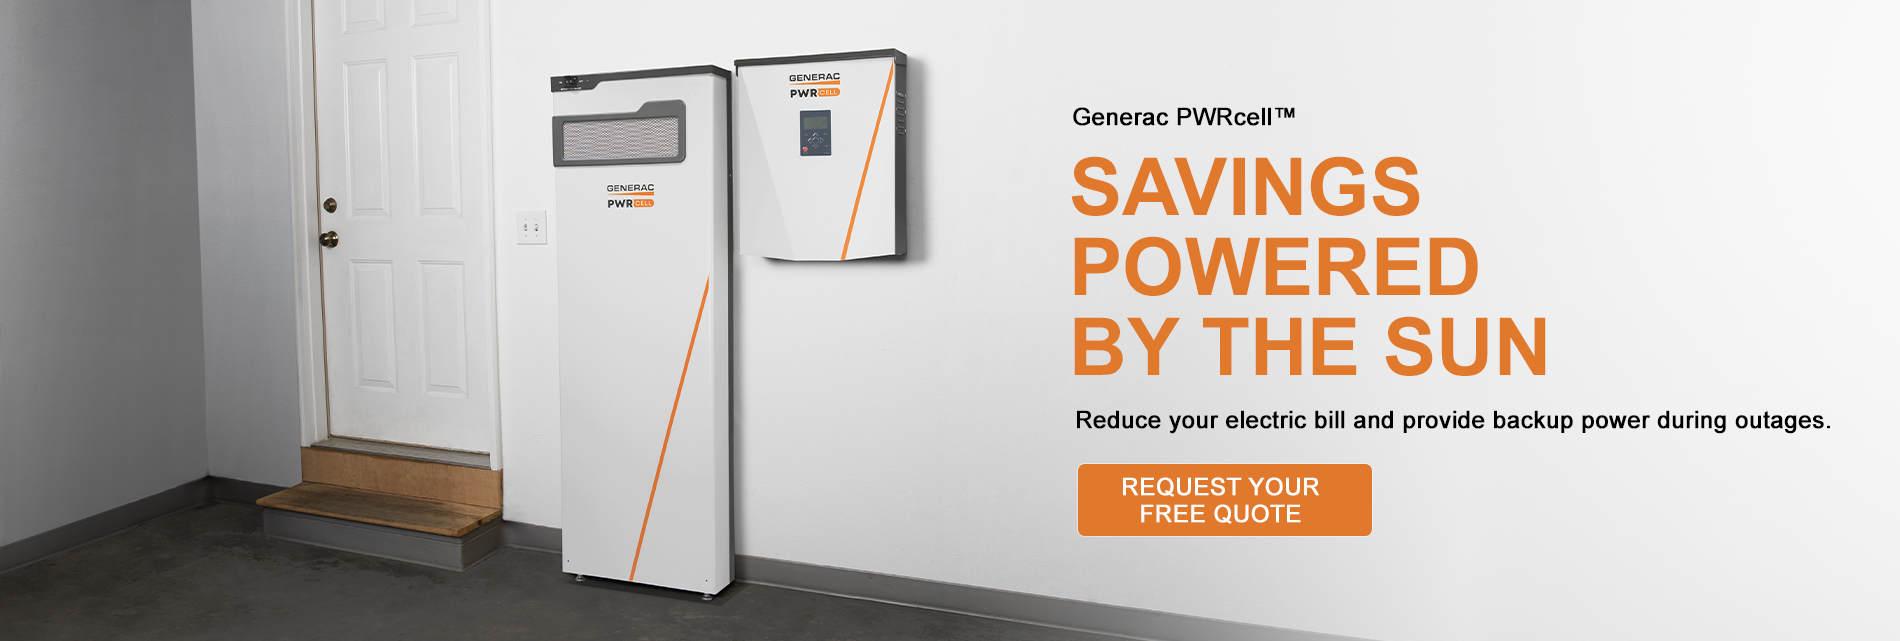 Generac PWRcell - Savings Powered by the Sun - Request Your Free Quote